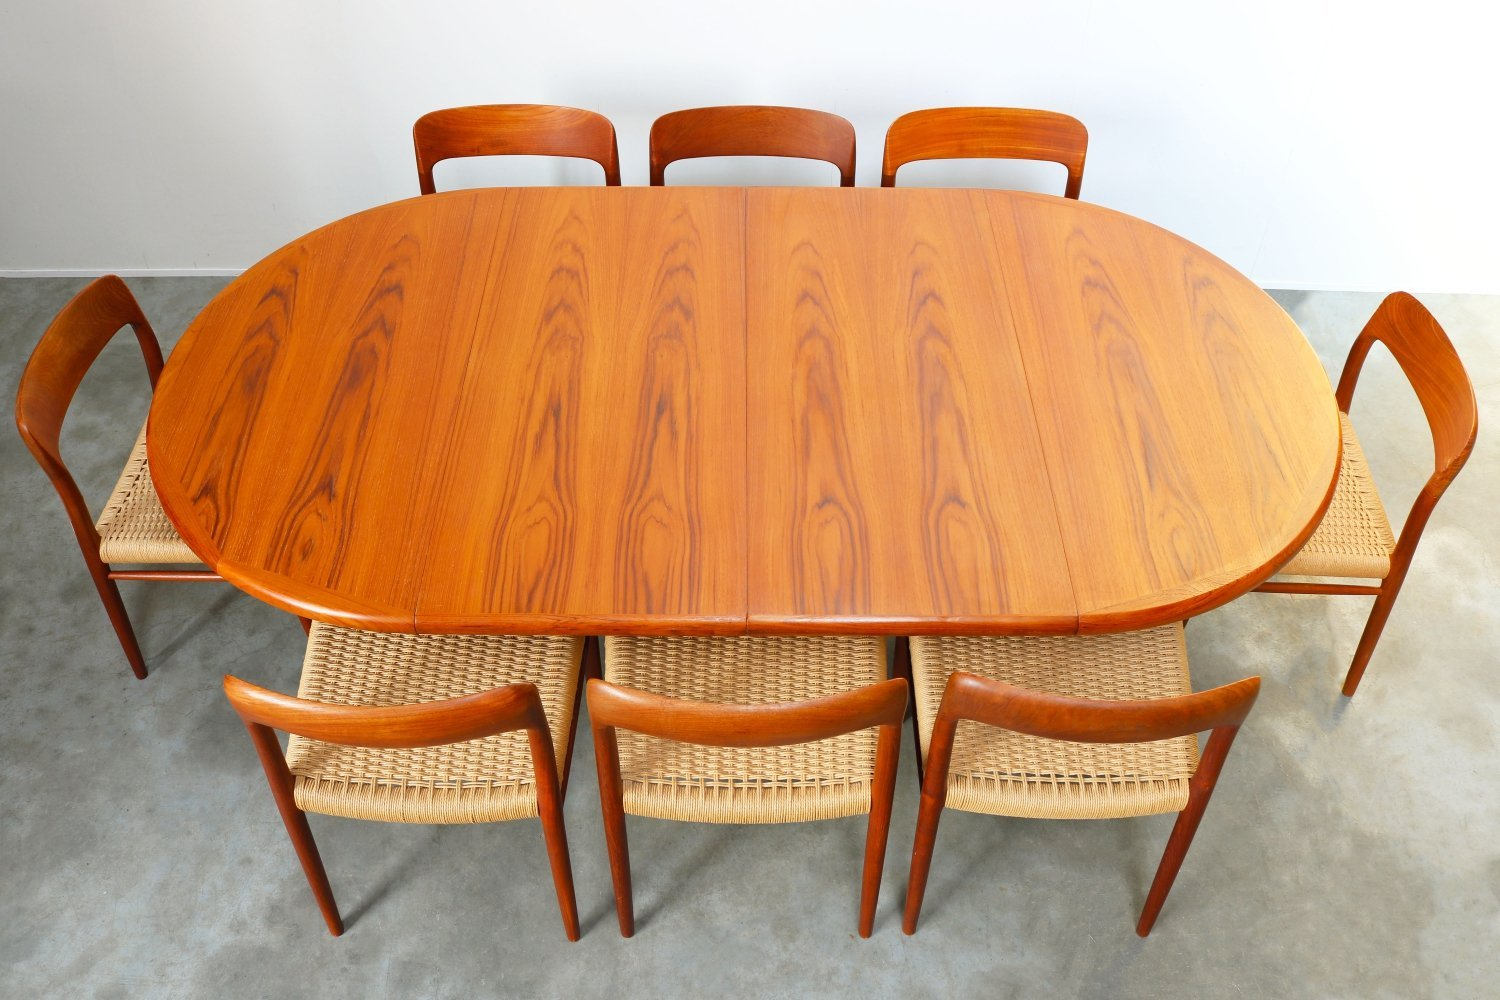 Large Danish dining room set in Teak & Papercord by Niels Otto Moller, 1950